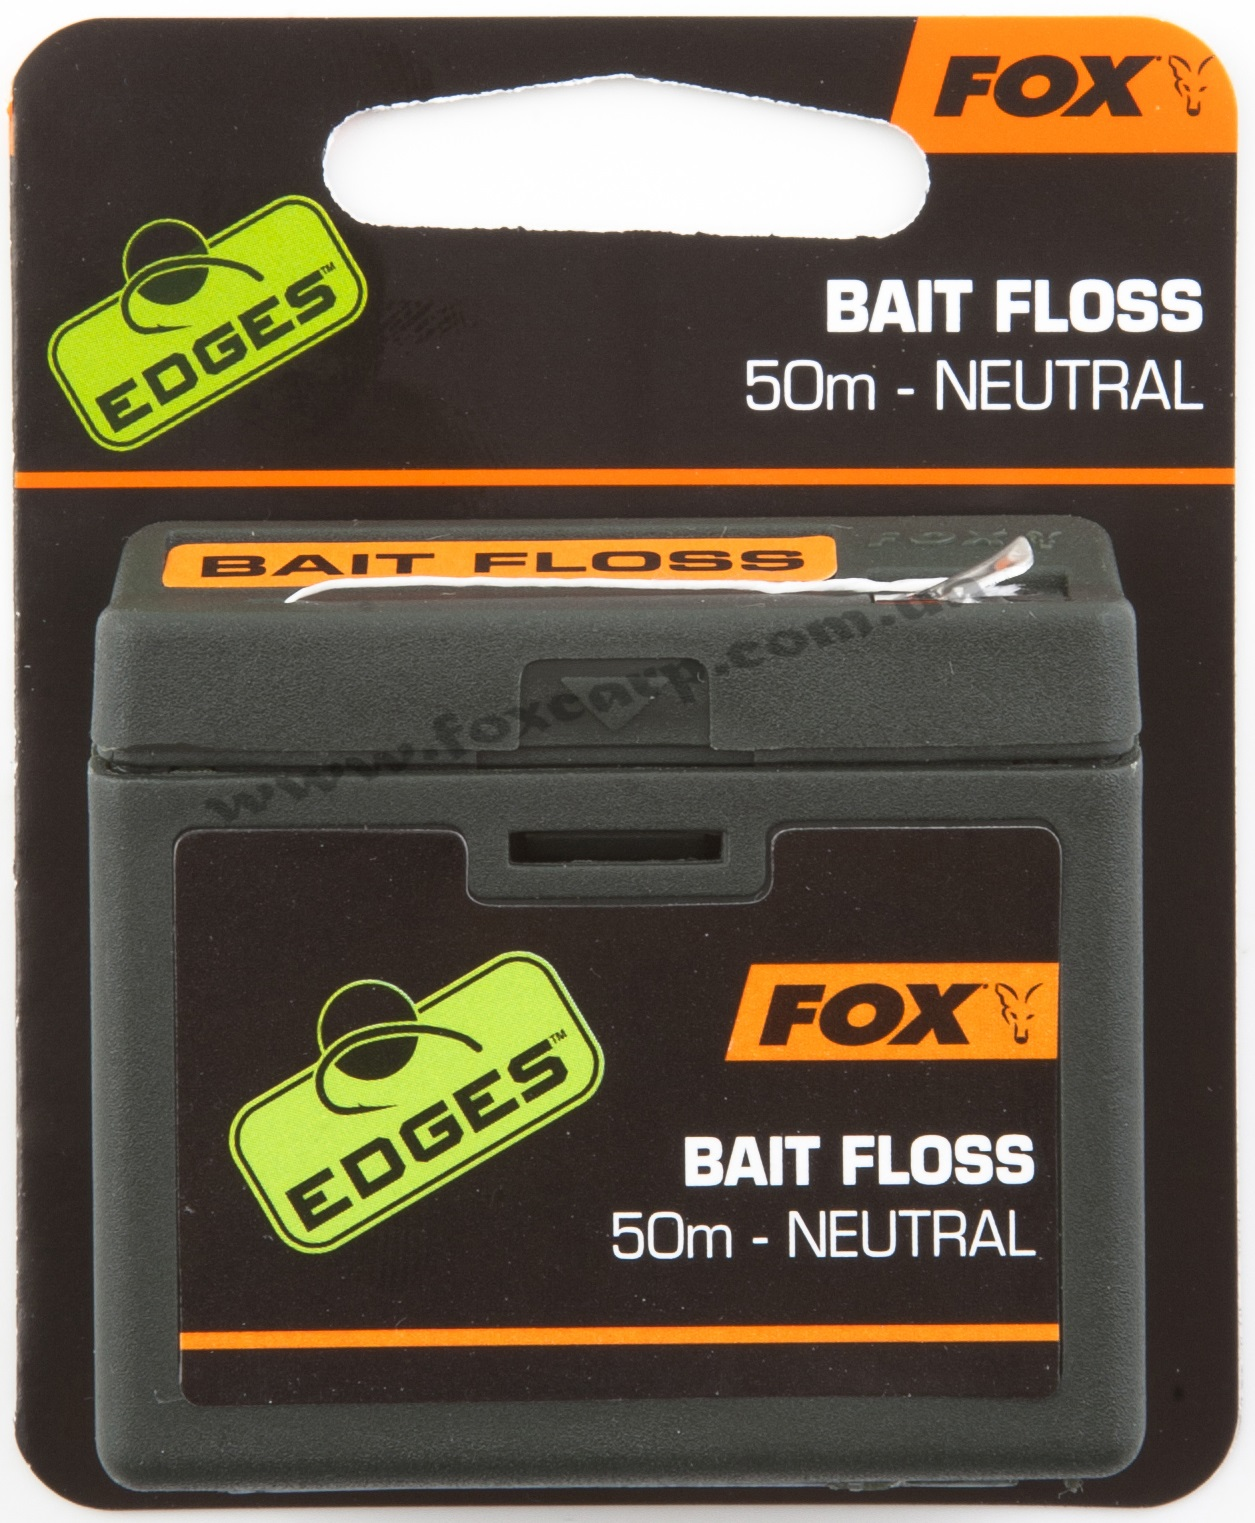 Fox Нить для бойлов — EDGES Bait Floss 50 м.